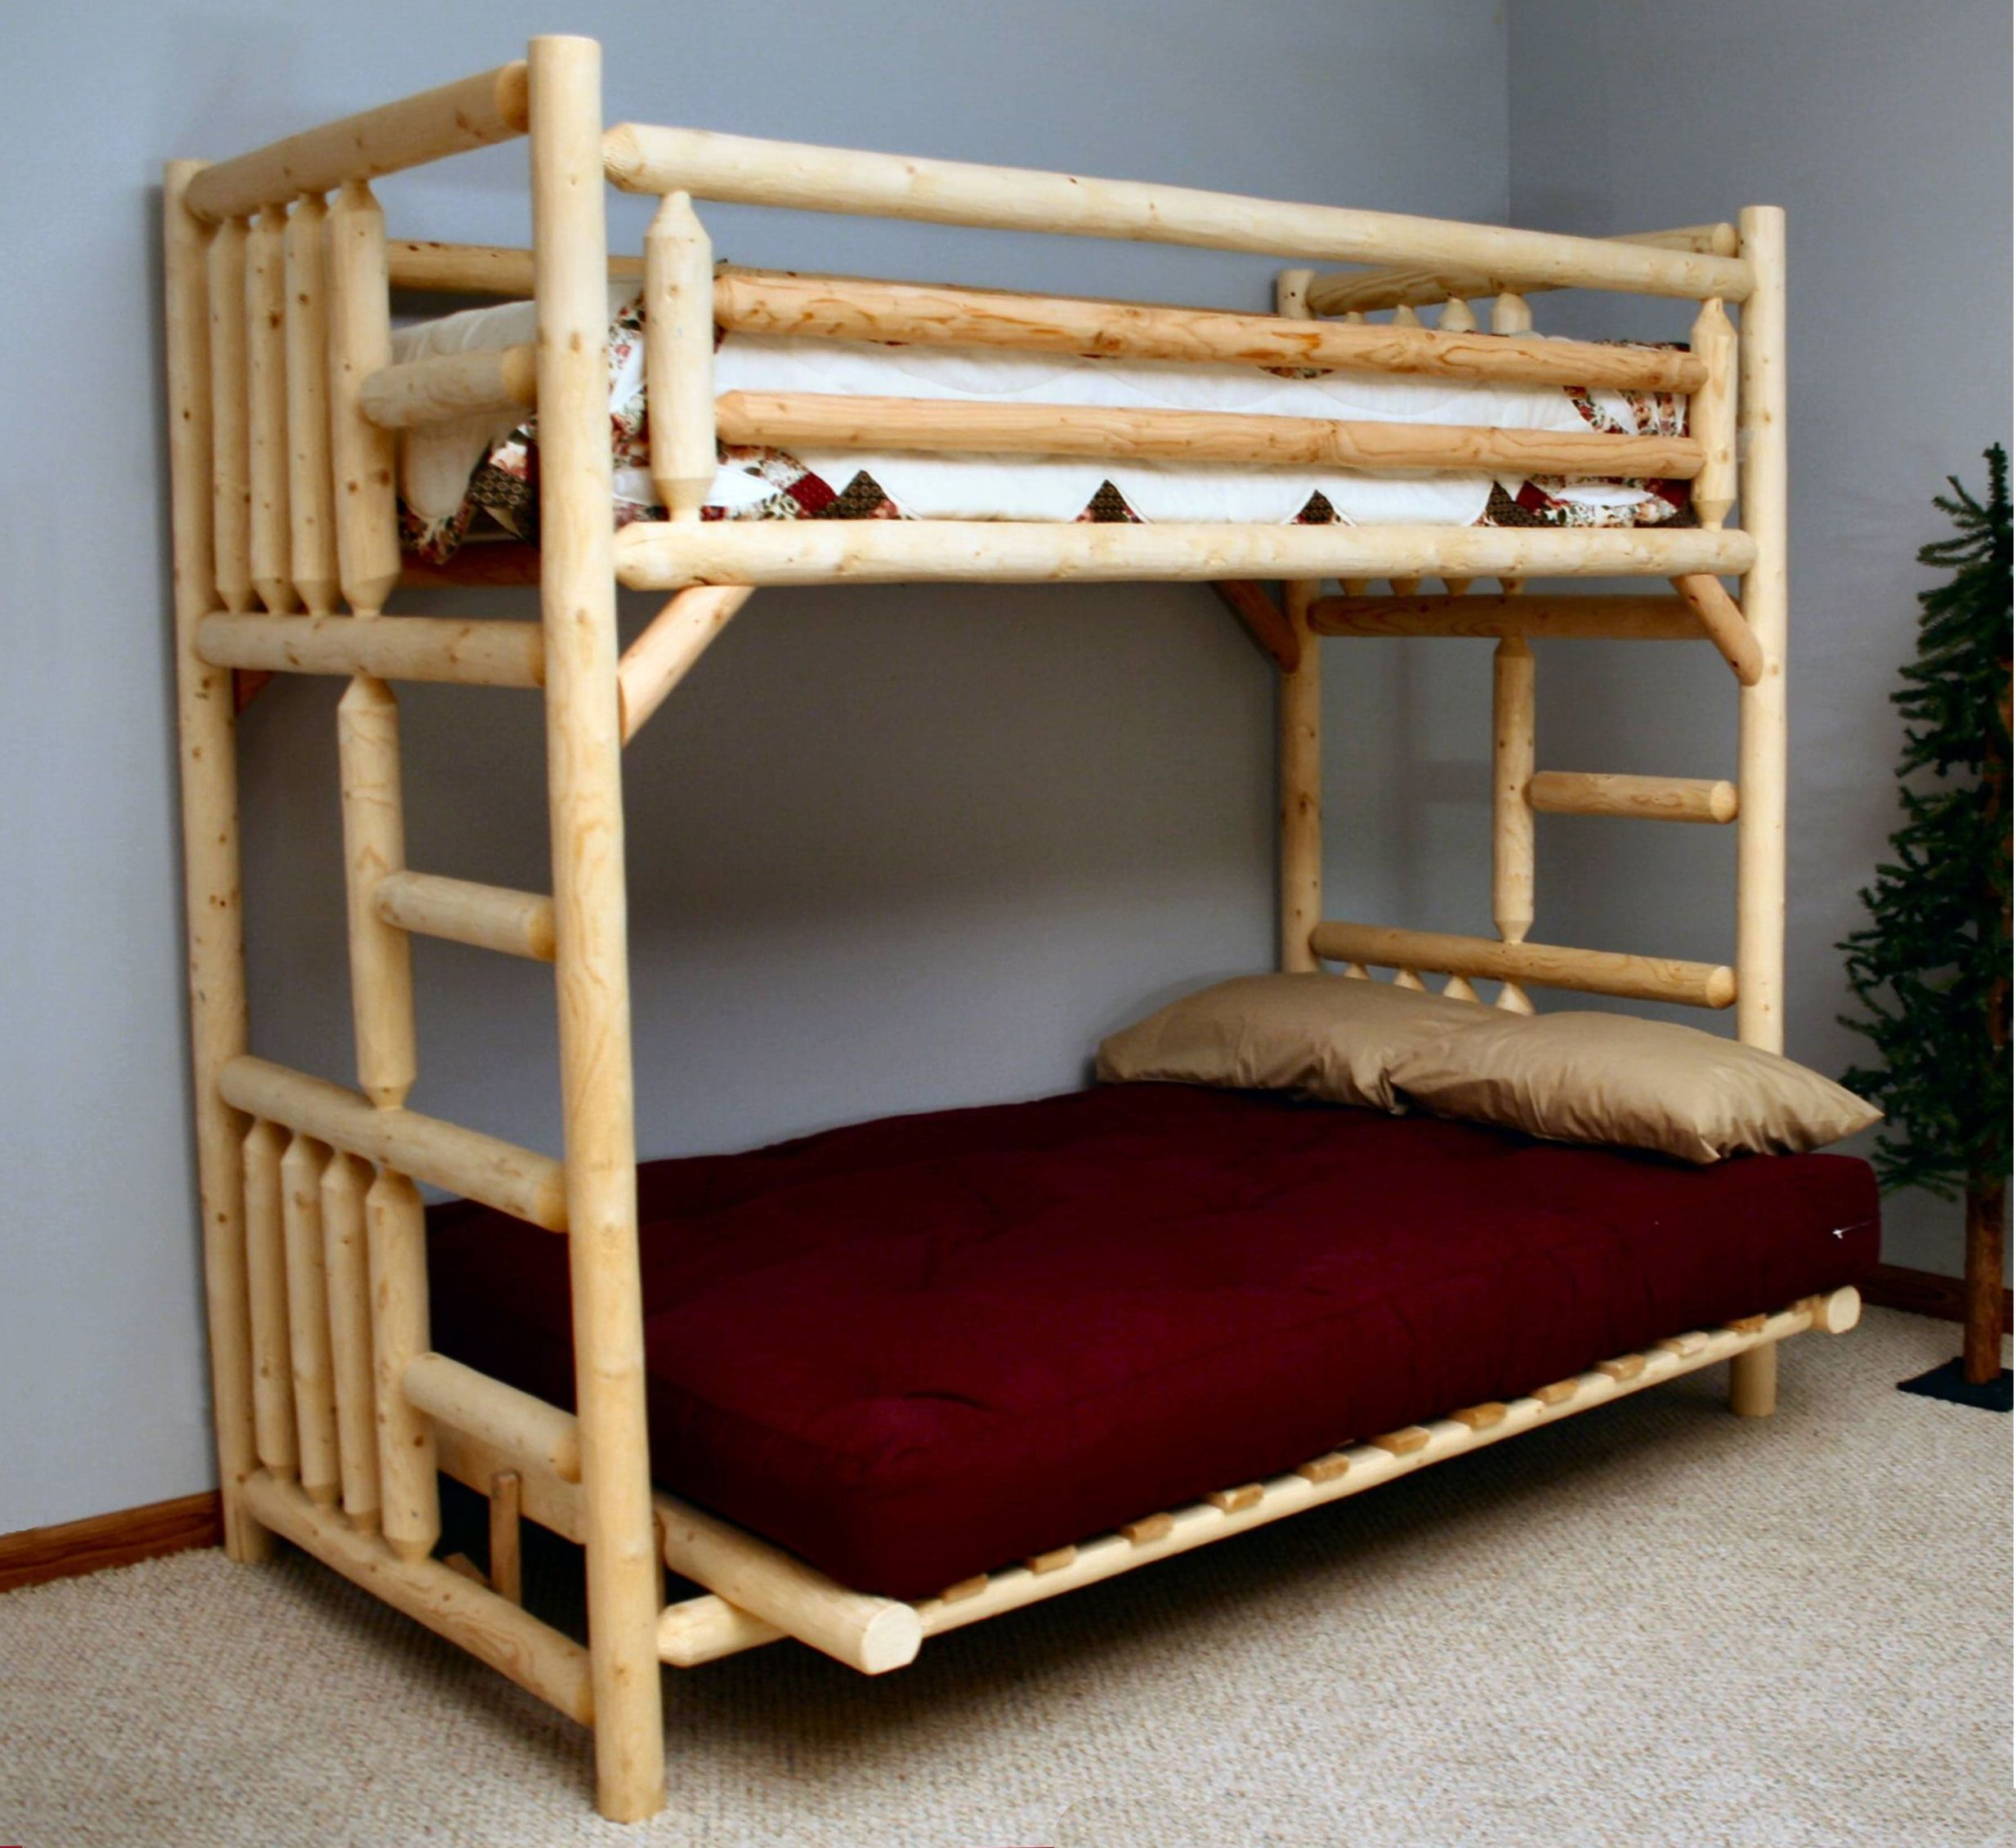 homemade bunk beds Google Search bygga ¥t barnen